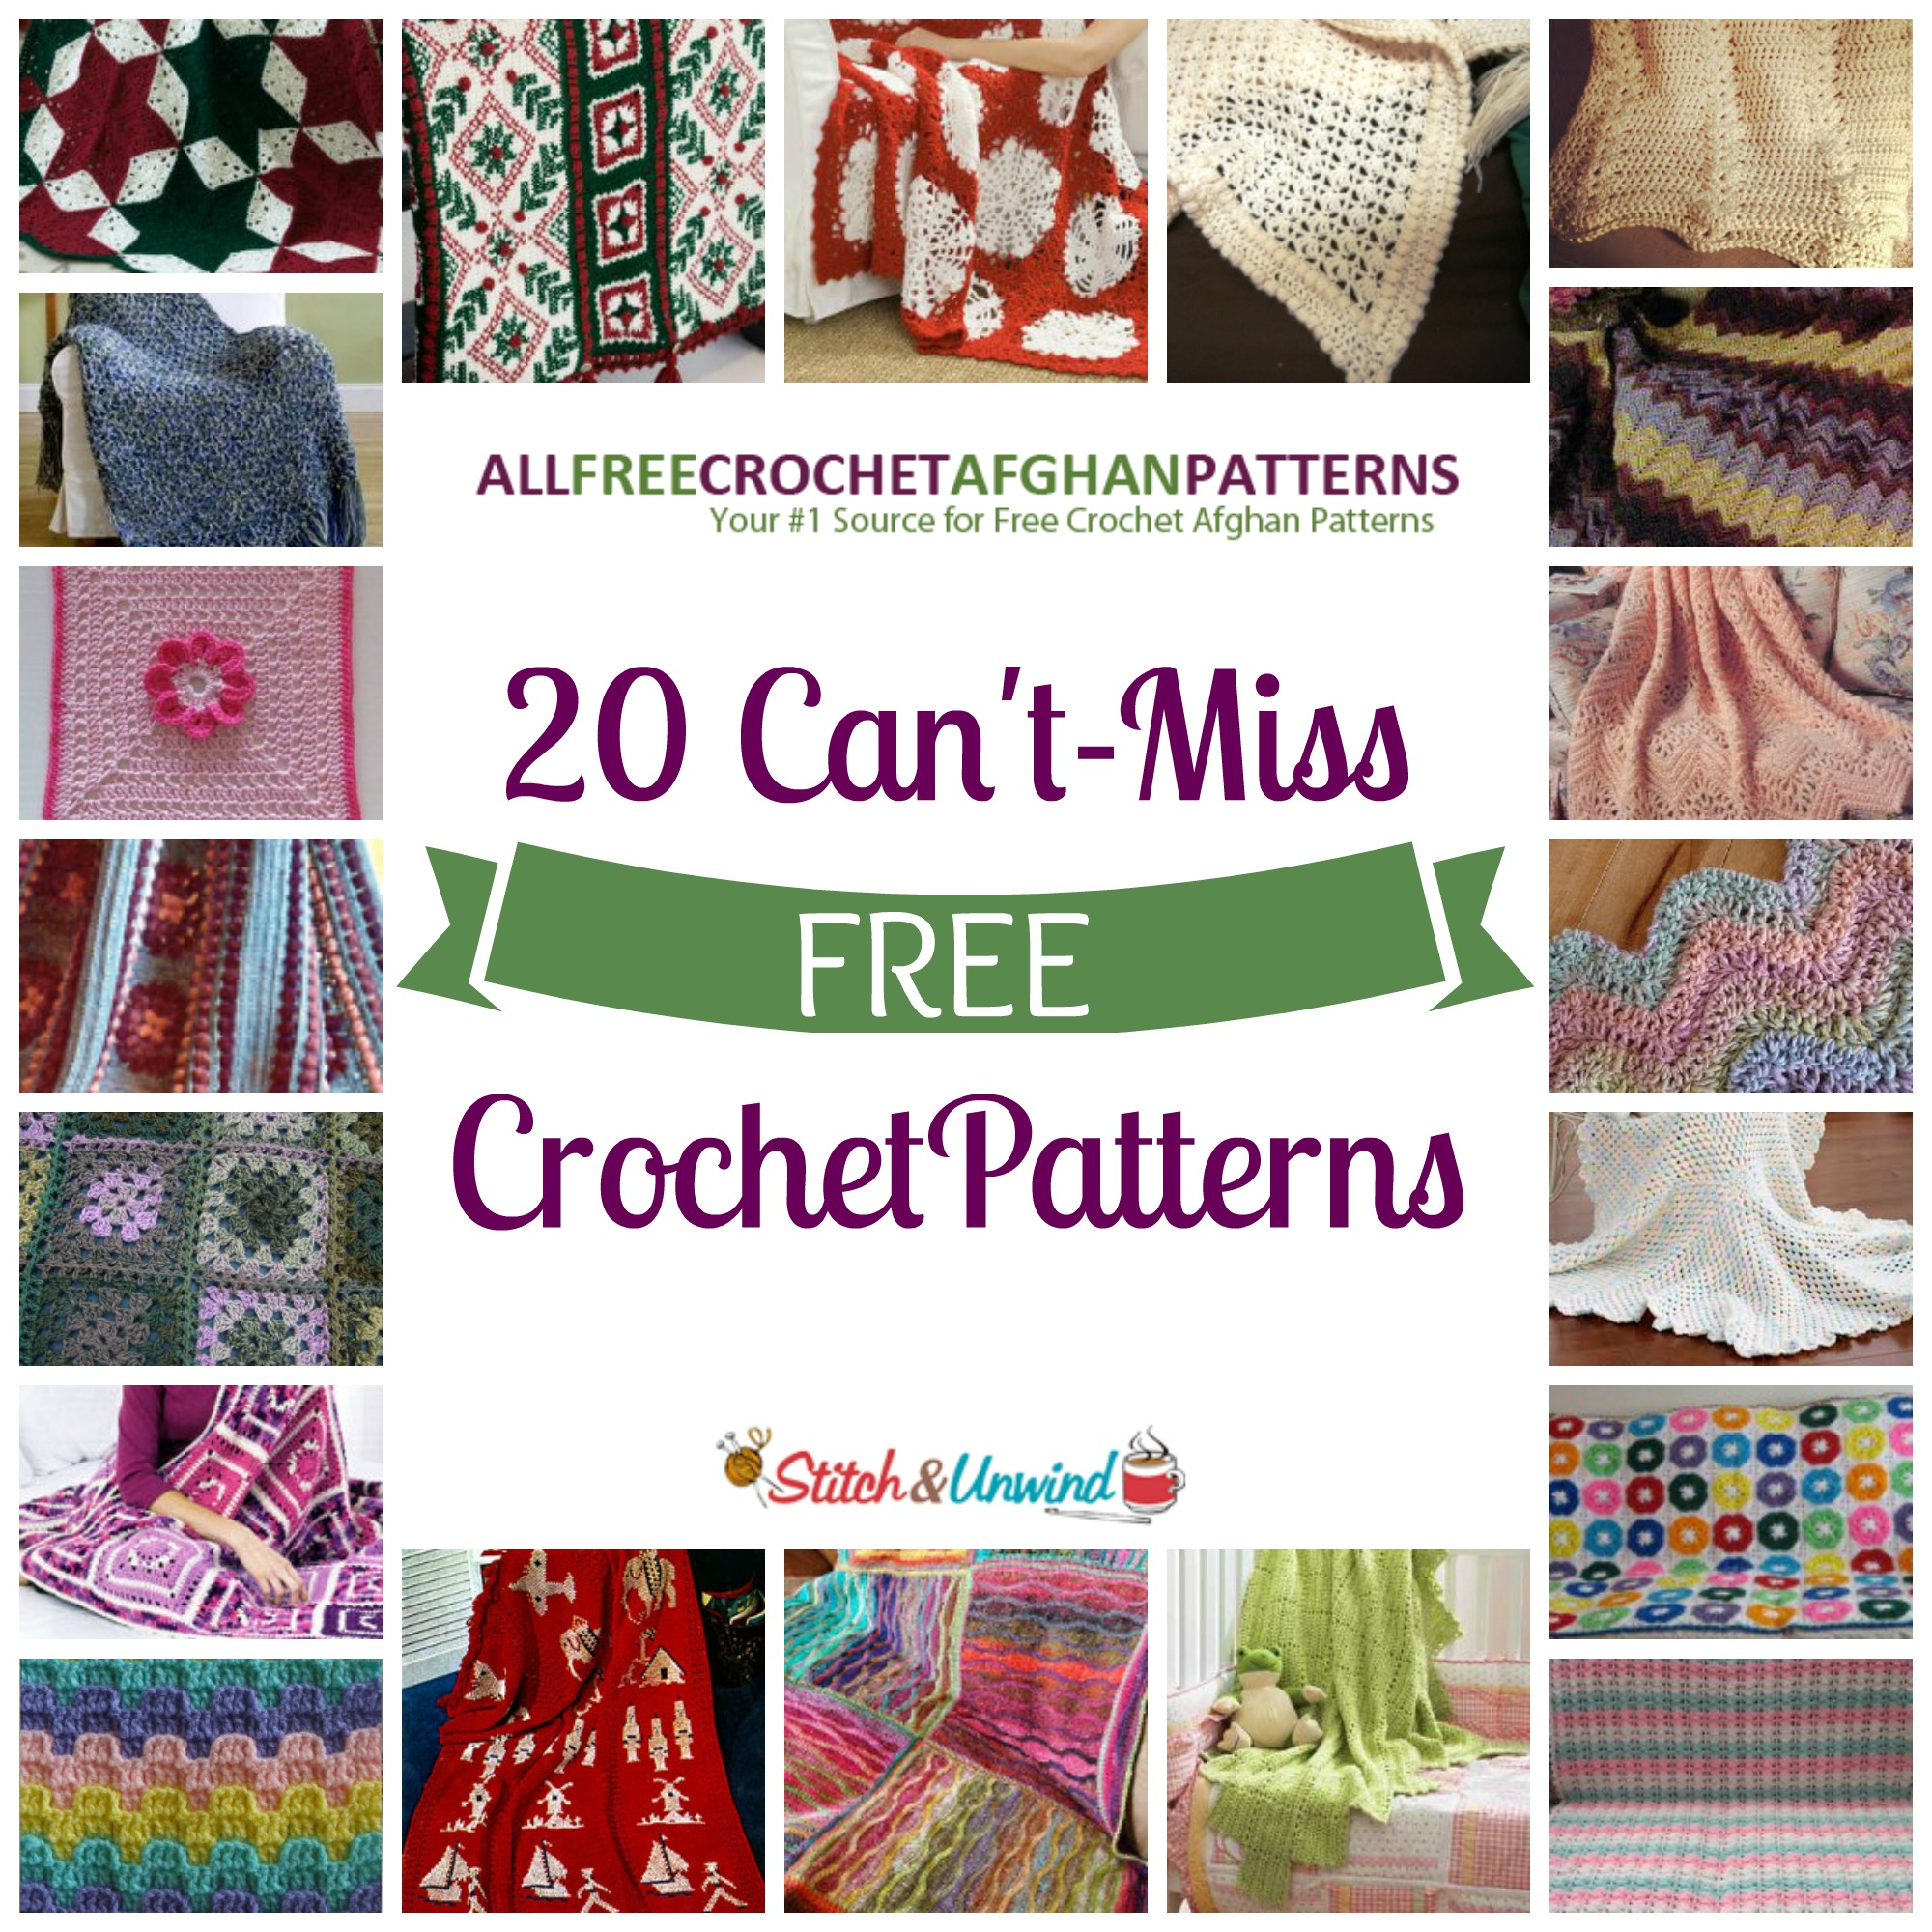 Find Free Crochet Patterns Online : 20 Cant-Miss Crochet Patterns - Stitch and Unwind